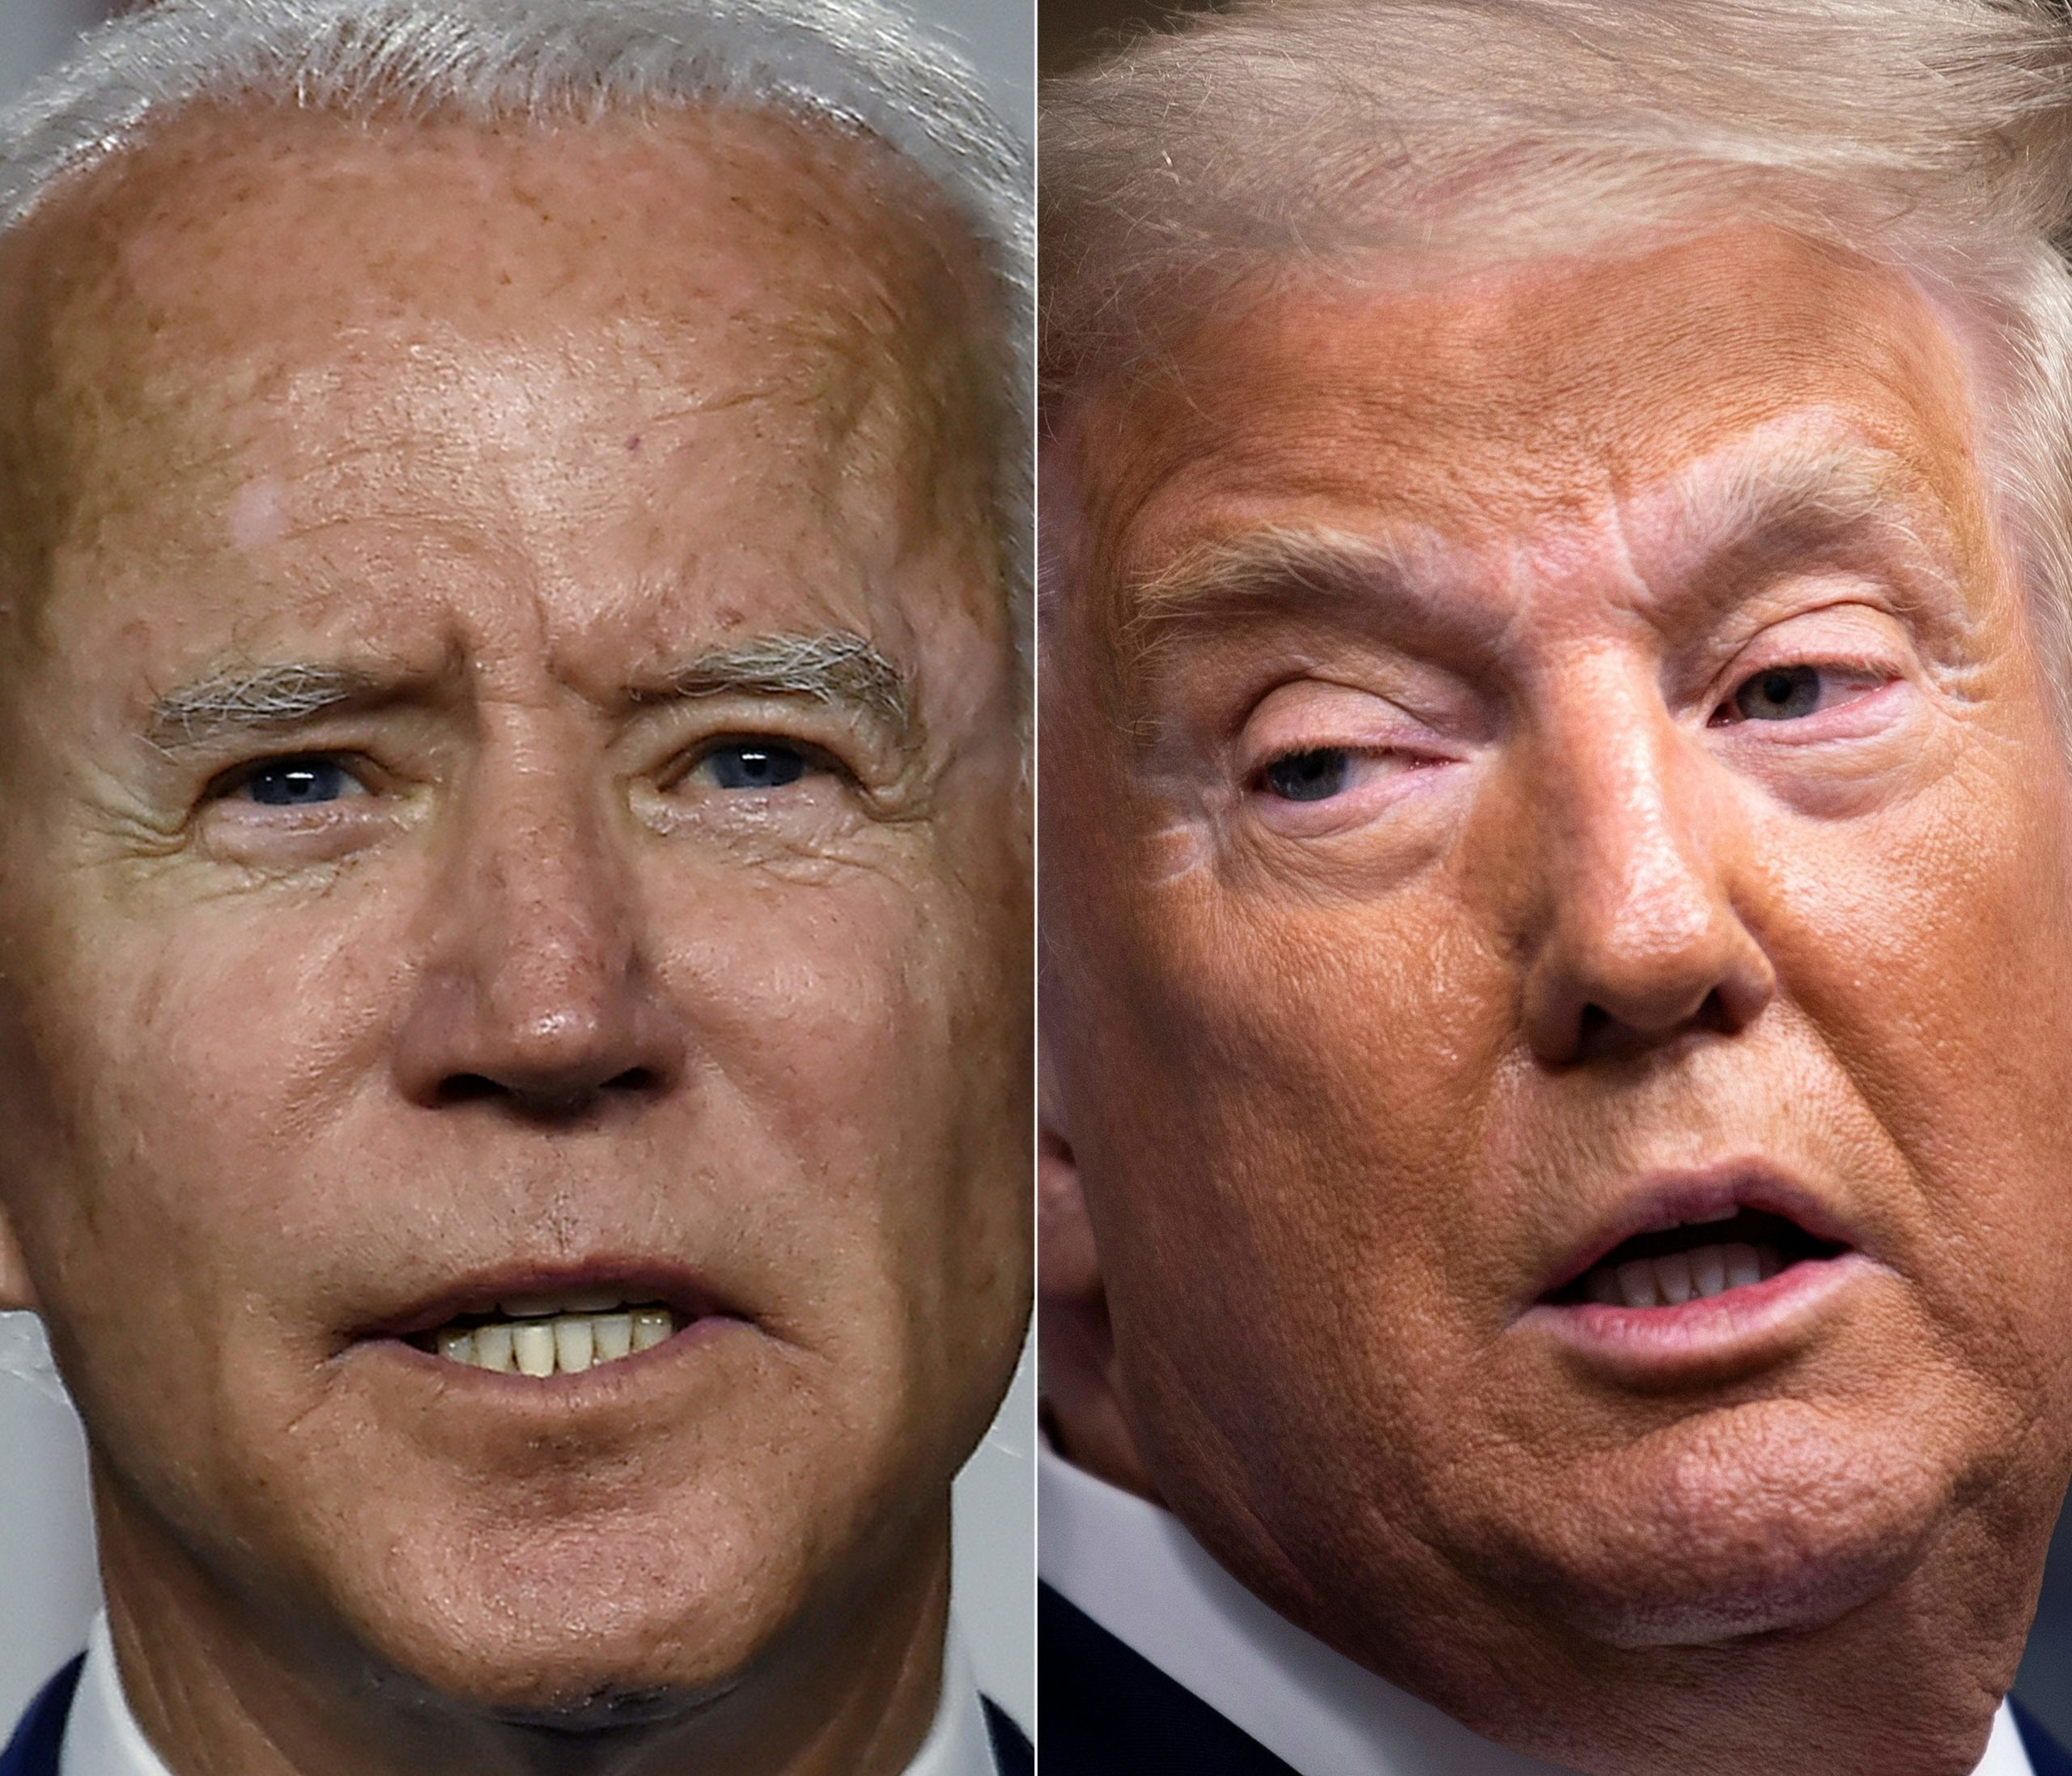 """This combination of pictures created on September 28, 2020 shows Democratic presidential candidate and former Vice President Joe Biden(L) speaking at a """"Build Back Better"""" Clean Energy event on July 14, 2020 at the Chase Center in Wilmington, Delaware, and US President Donald Trump speaking during a briefing at the White House September 27, 2020, in Washington, DC. - At the September 29, 2020 election debate, millions of Americans will watch as the two antagonists -- who depict each other as existential threats to the country -- step into the ring live on television after months of shadow-boxing. (Photo by OLIVIER DOULIERY,BRENDAN SMIALOWSKI/AFP via Getty Images)"""